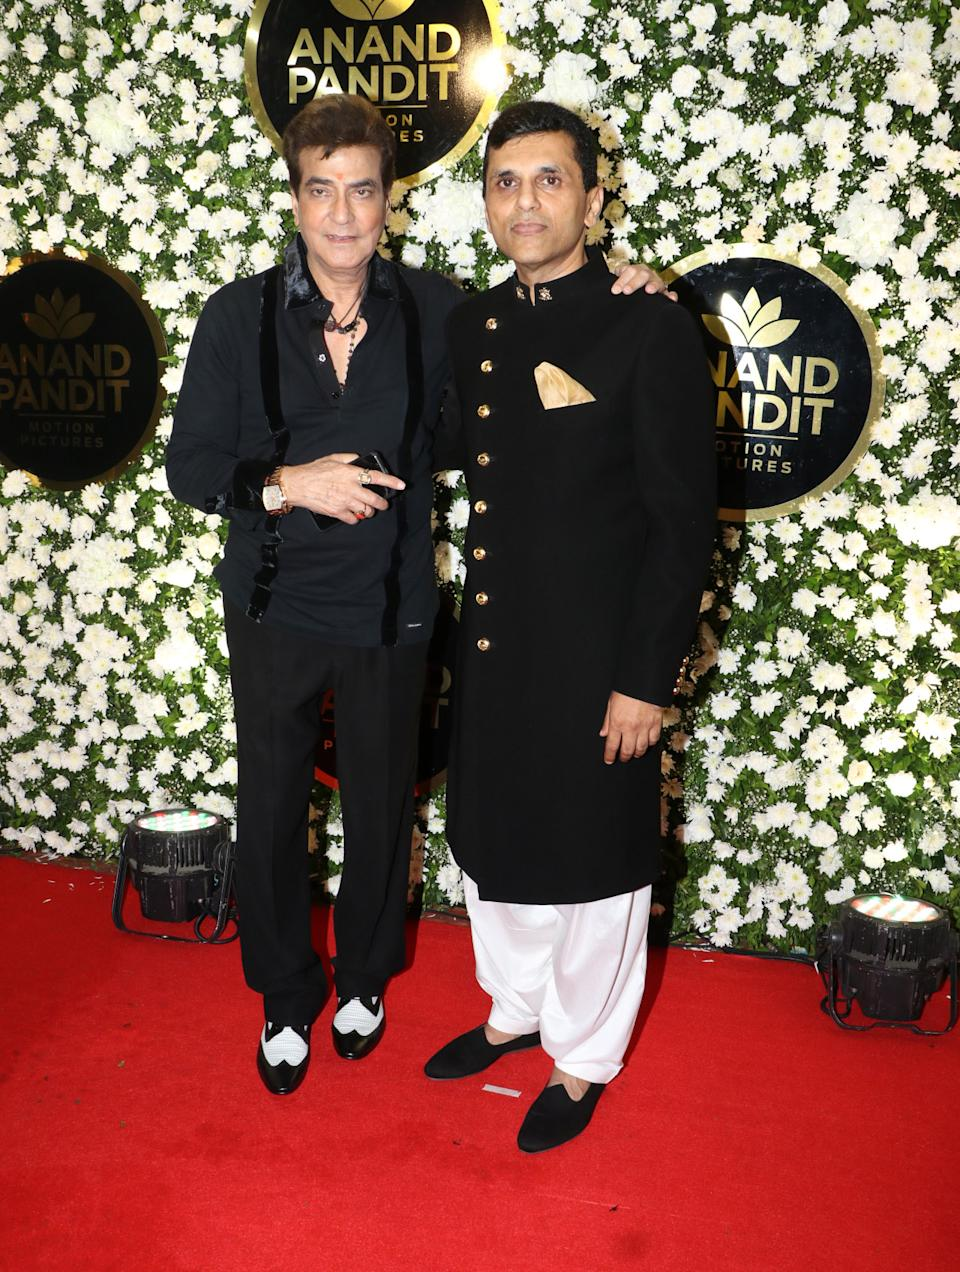 Jetendra posed with Anand Pandit for the paparazzi.